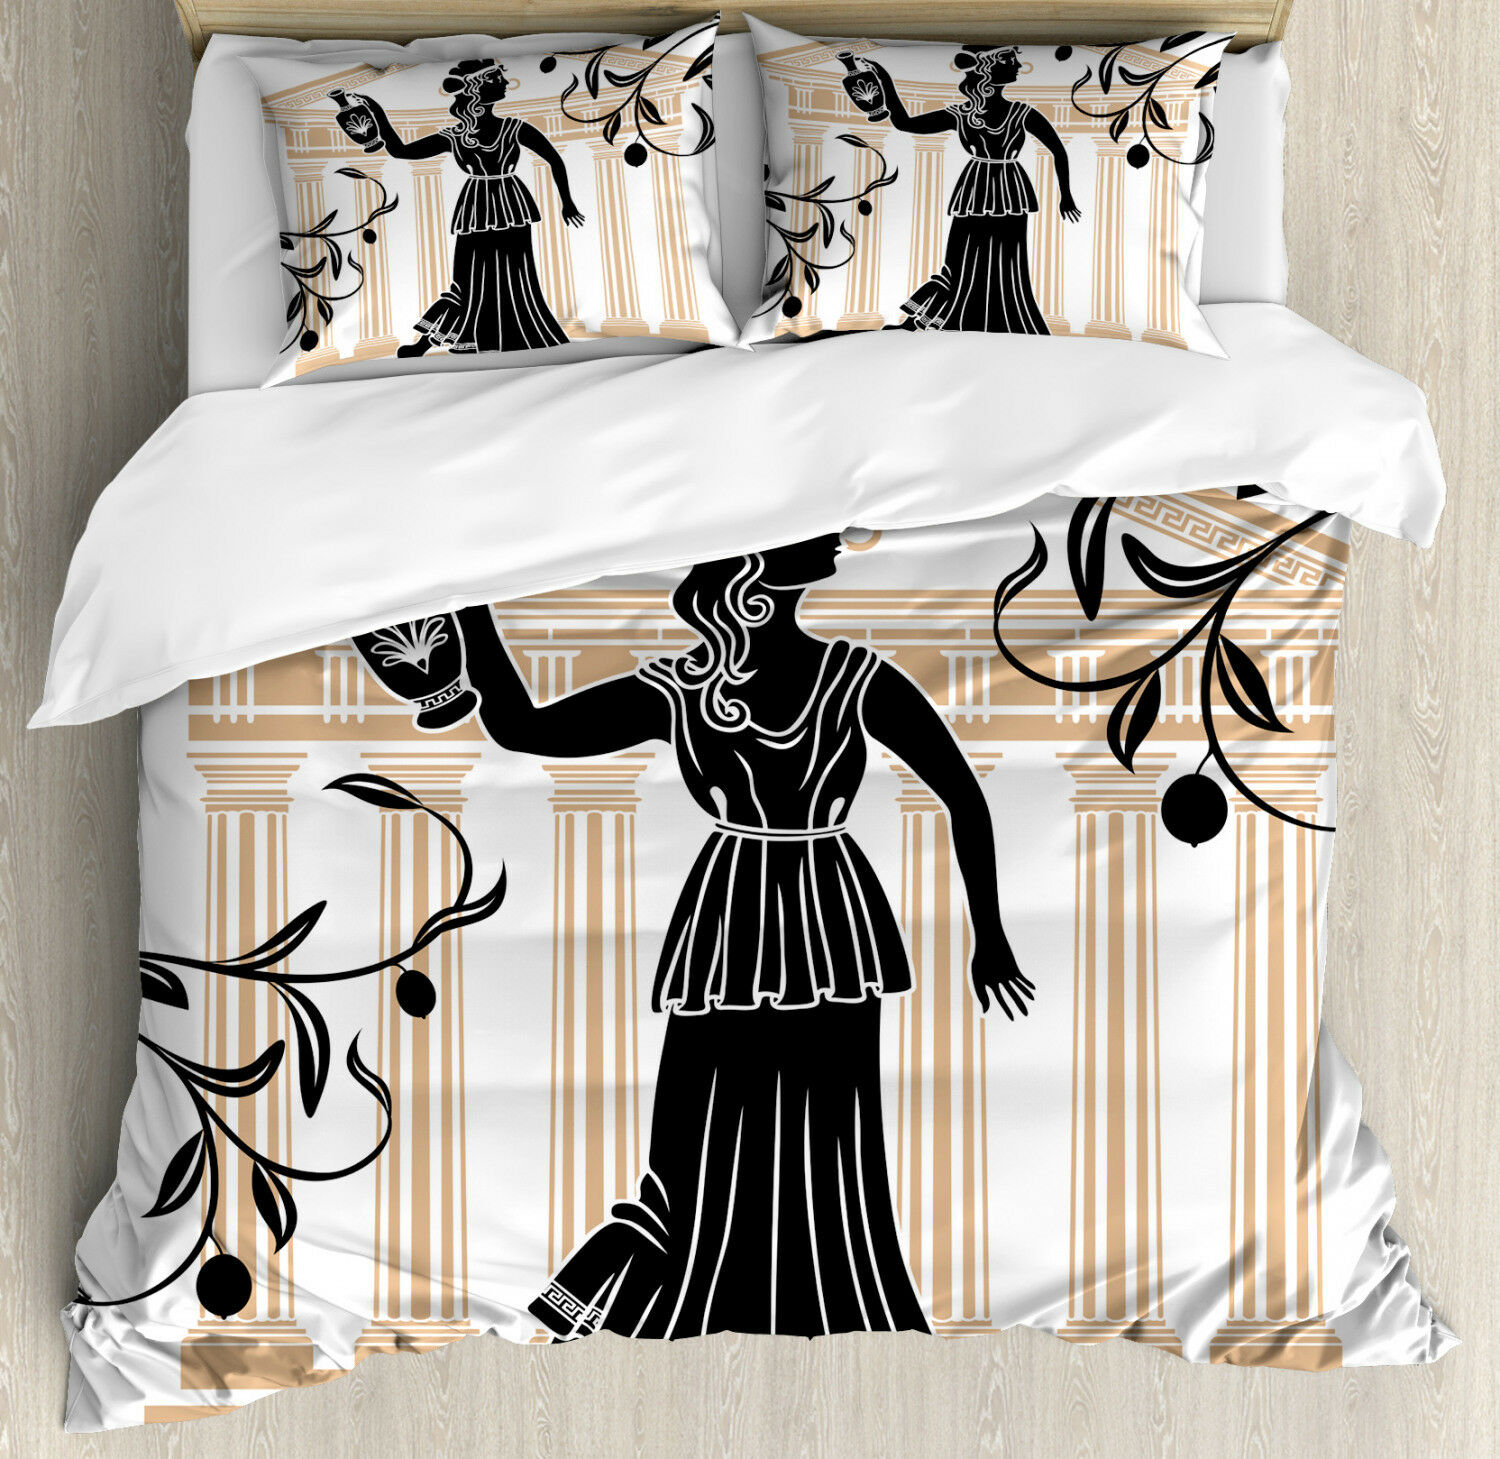 Toga Party Duvet Cover Set with Pillow Shams Greek Woman Amphora Print